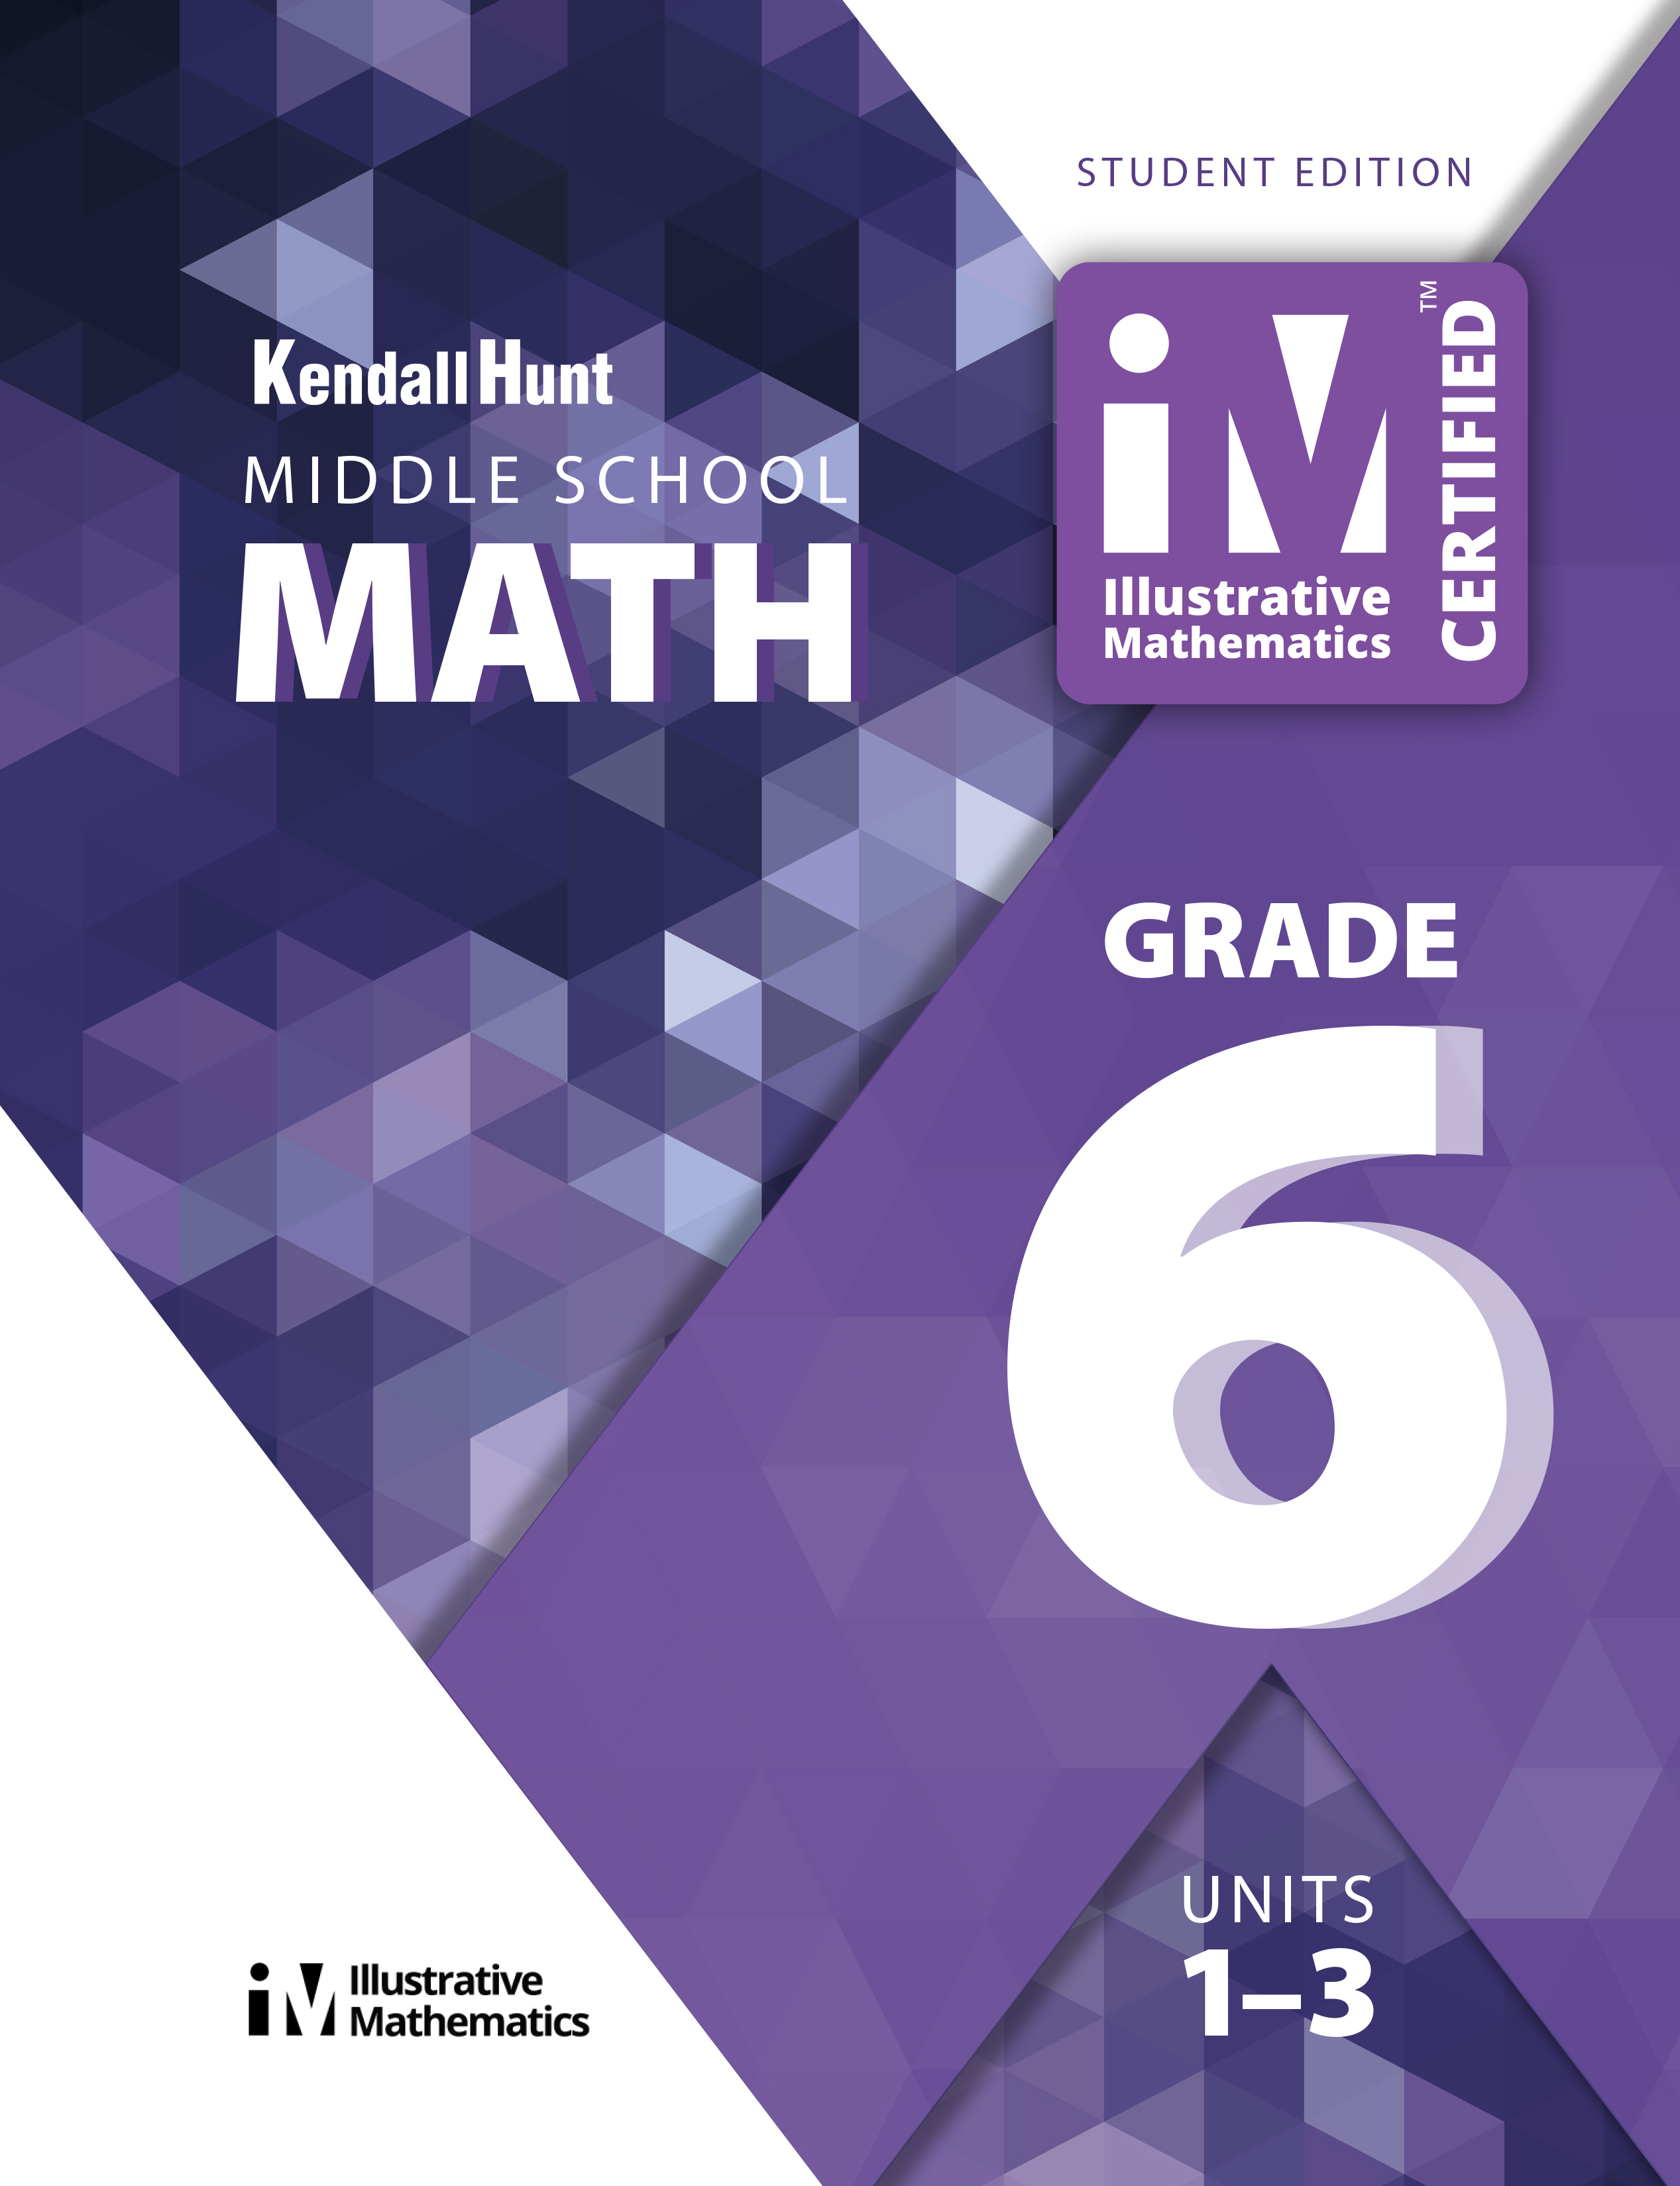 Illustrative Mathematics Grade 6 Middle School Math Teacher Guide